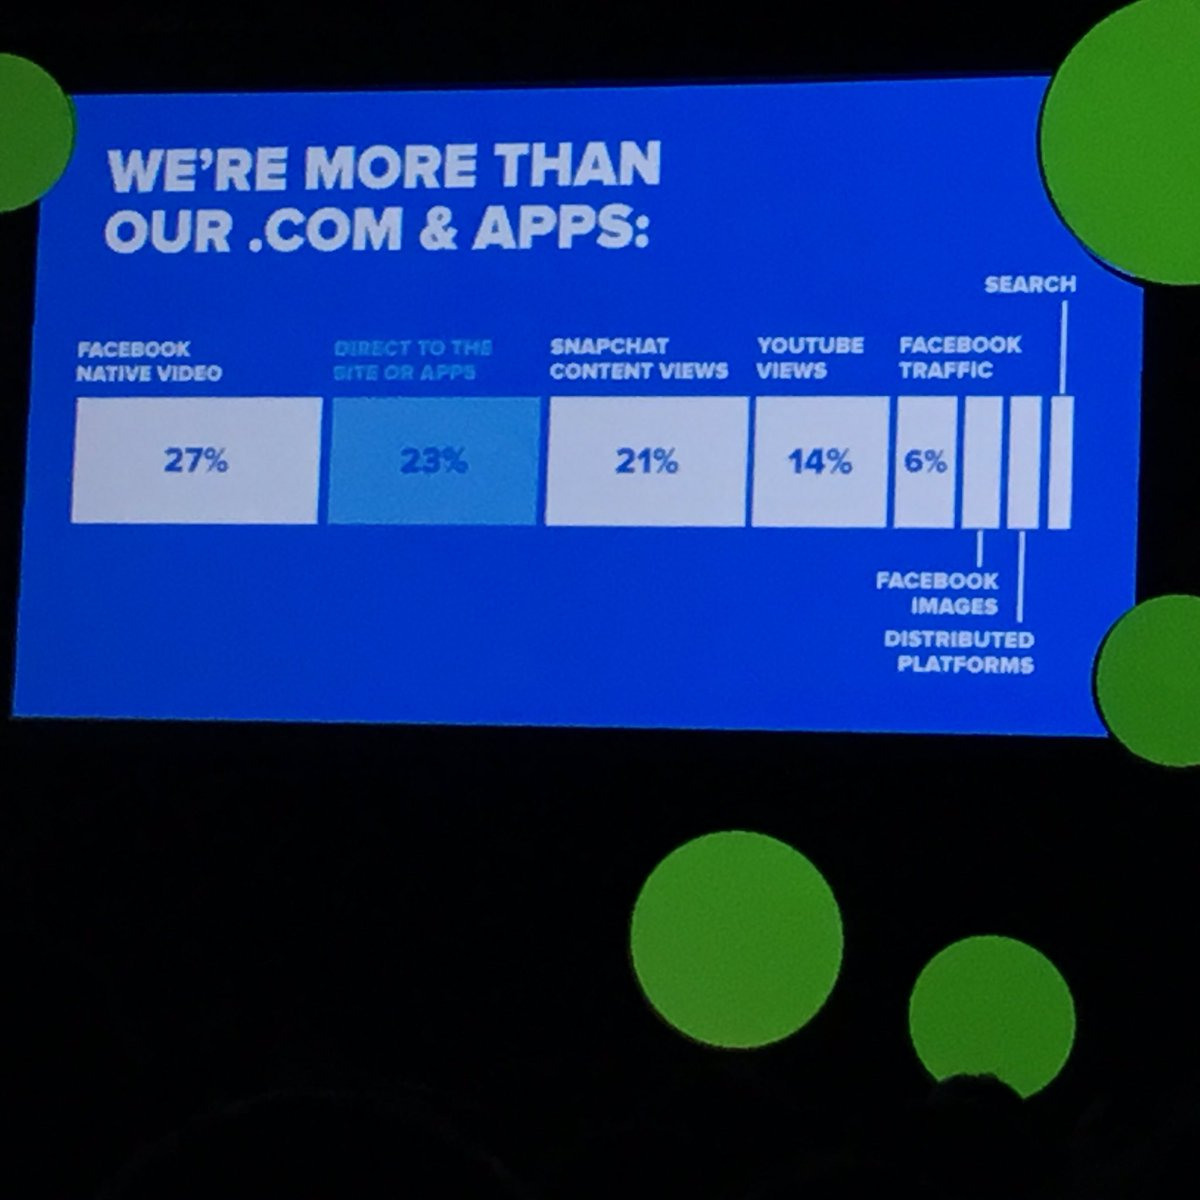 Where BuzzFeed's views come from #buzzfeednewfronts #NewFronts https://t.co/Xv0xB3iEUM